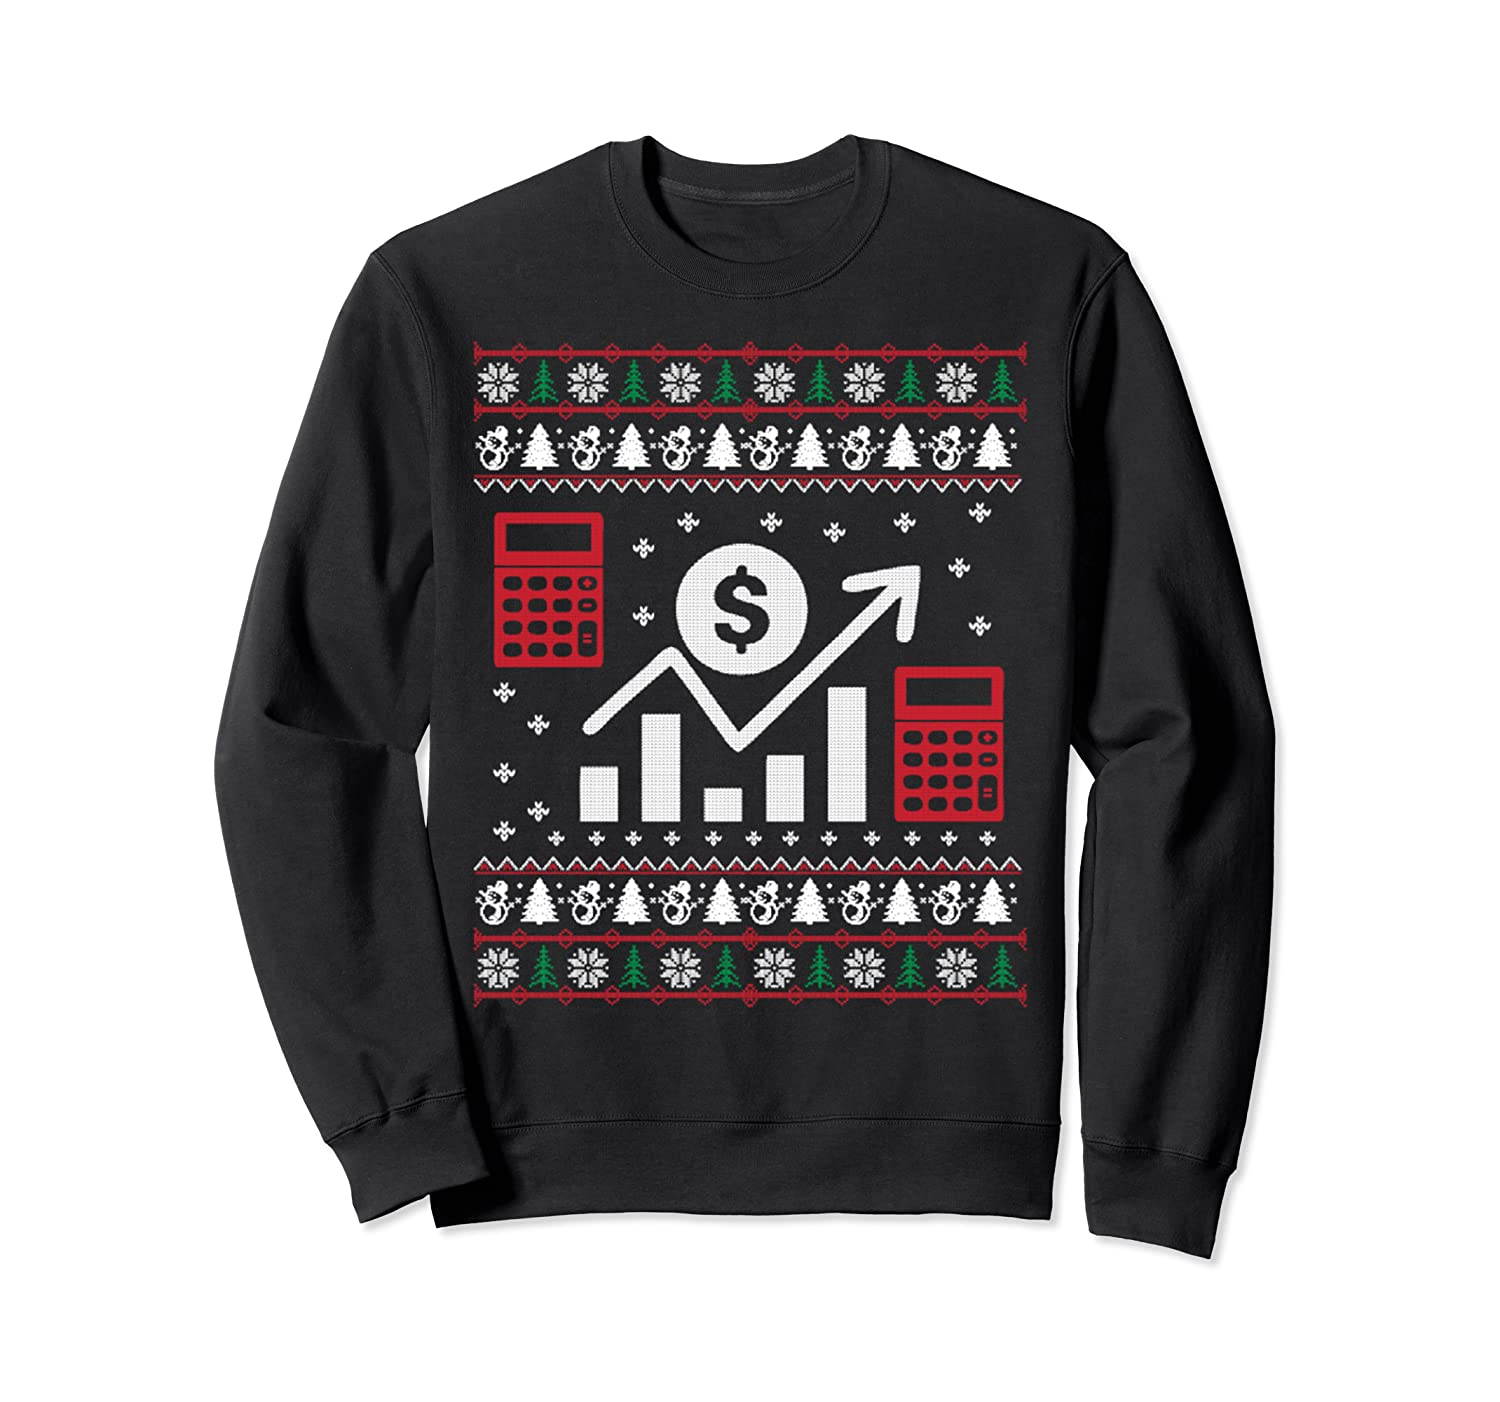 Accountant Ugly Christmas Sweater Gift Sweatshirt